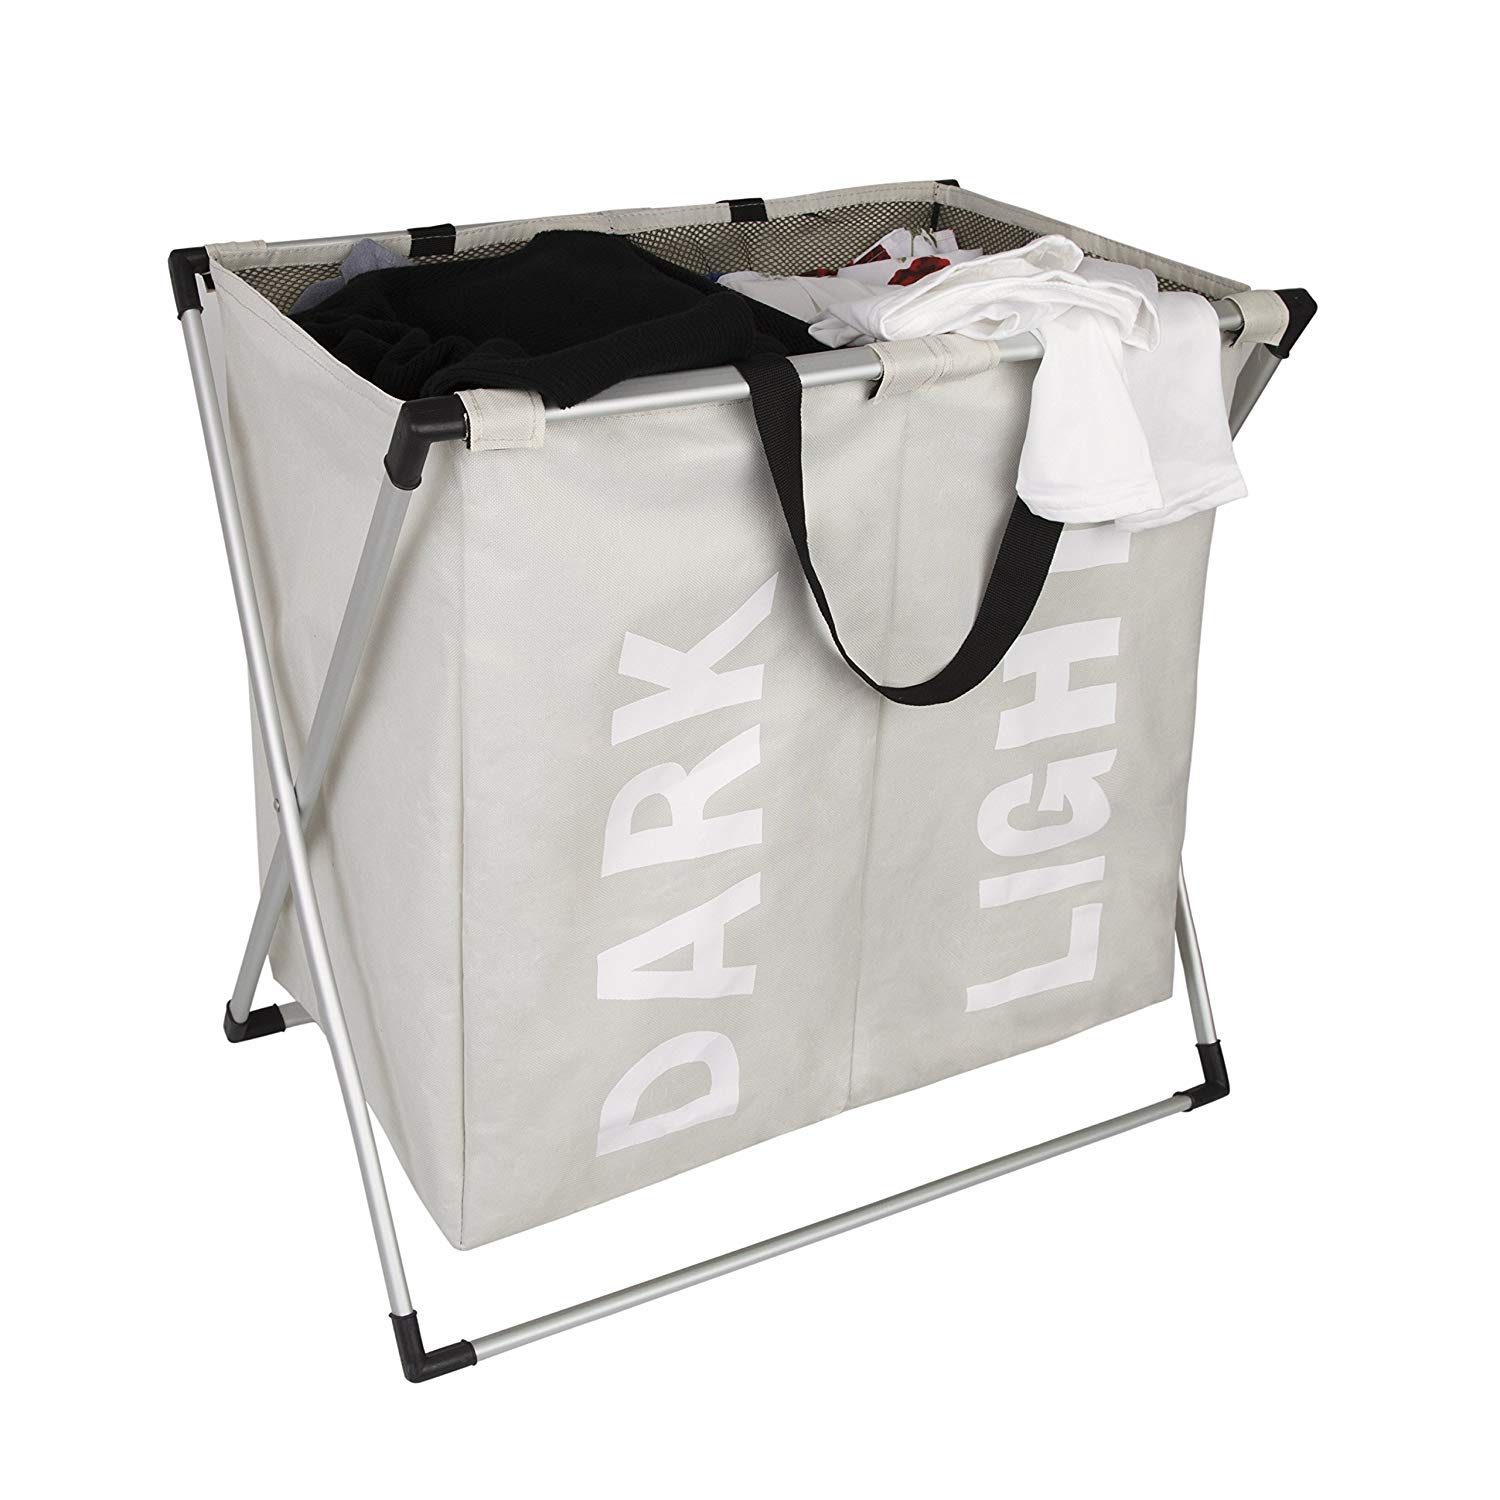 WOWLIVE 2 Section Laundry Hamper X-Frame Double Laundry Basket with Aluminum Frame Durable Dirty Clothes Bag for Bathroom Bedroom Home (Beige)